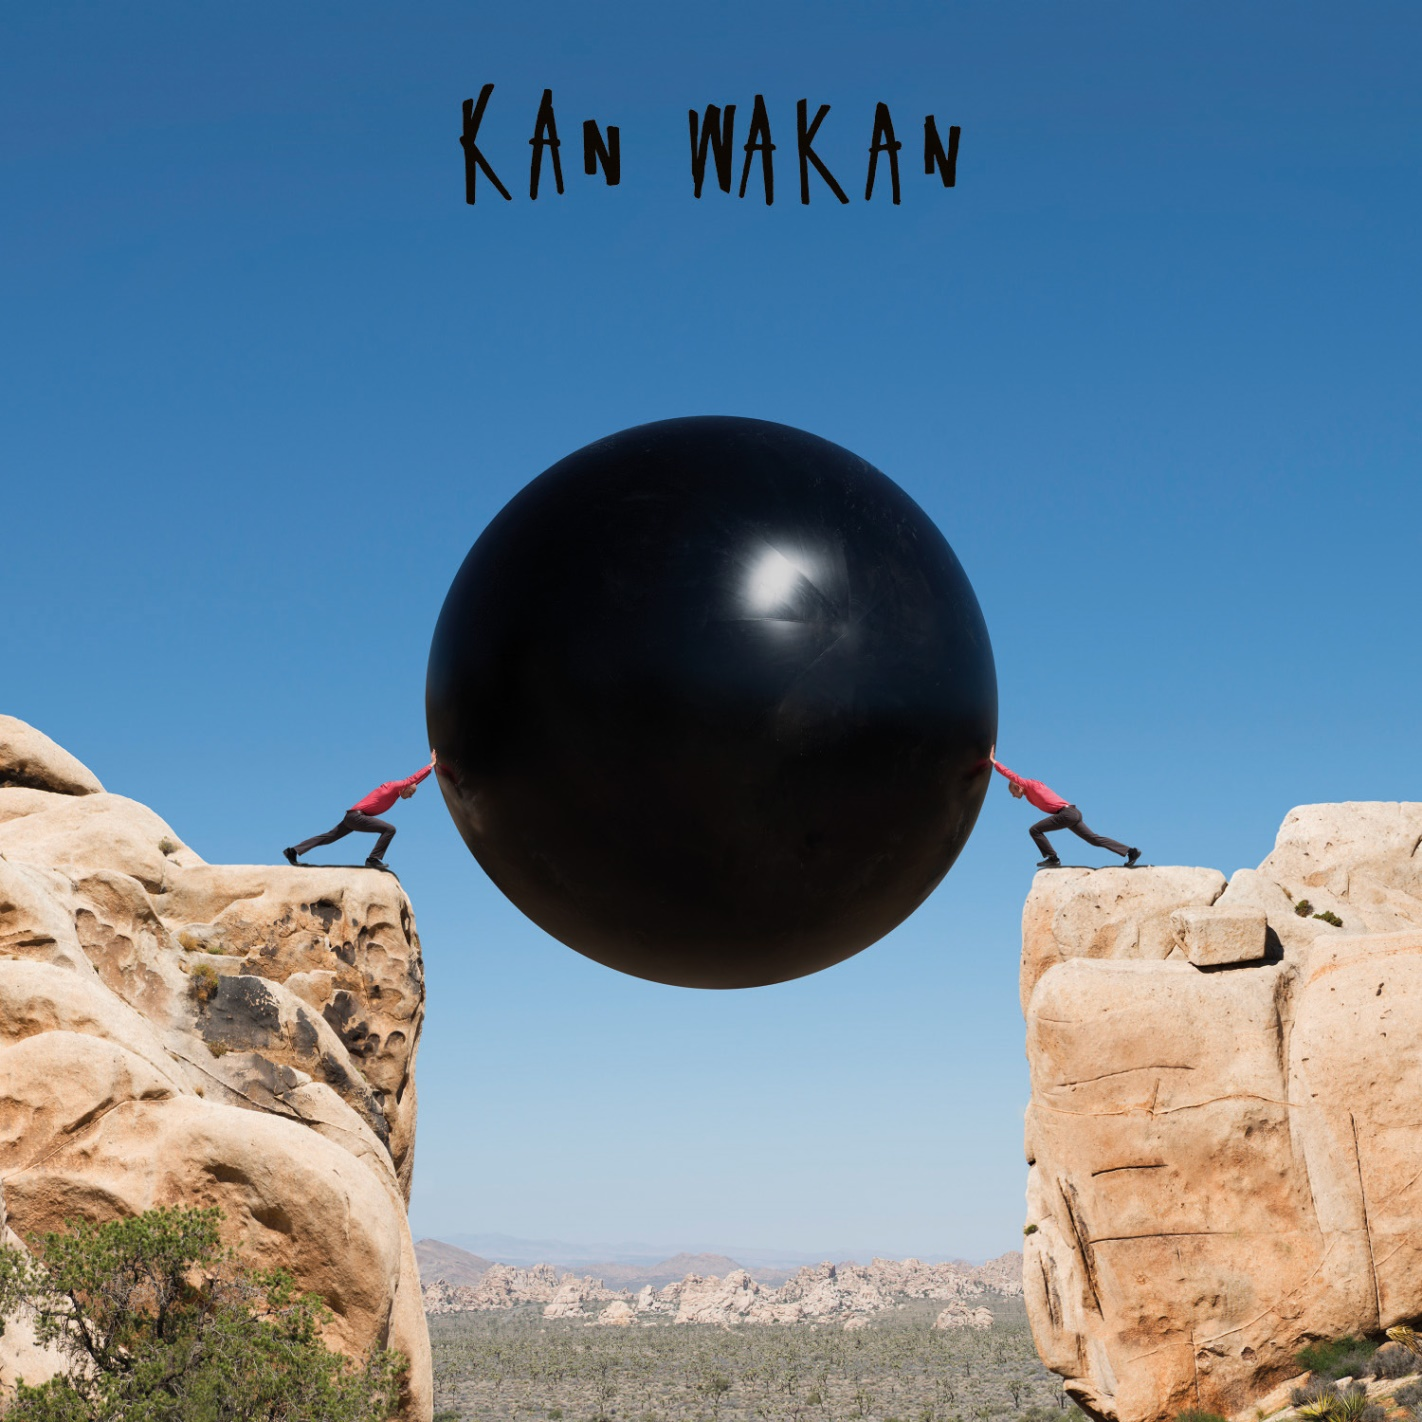 kan-wakan-moving-on